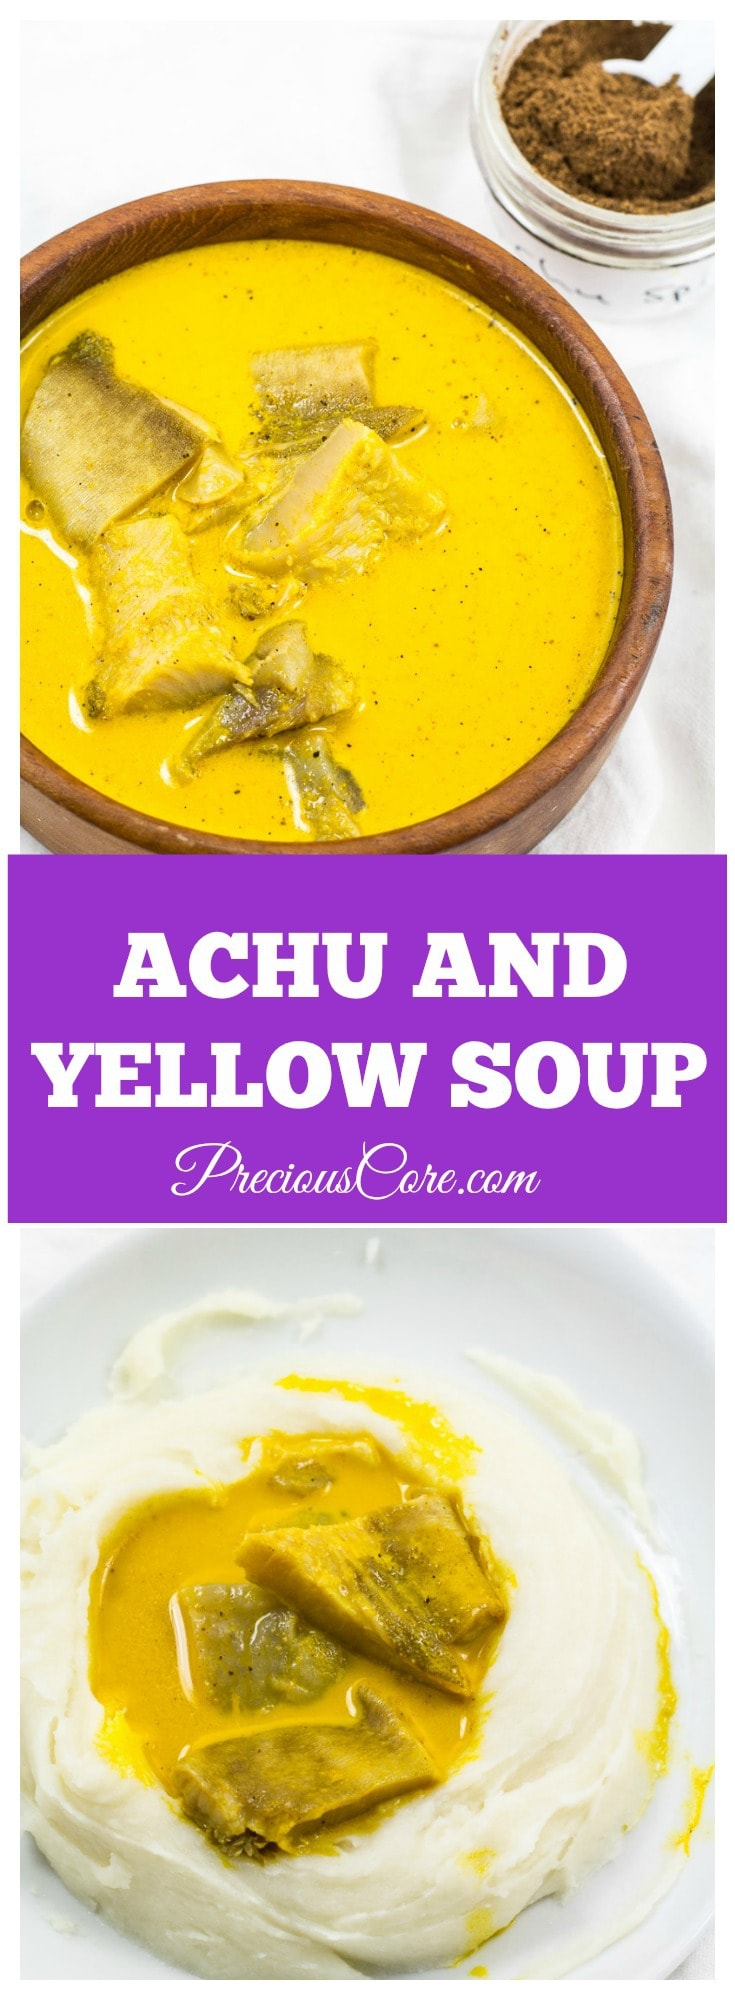 Achu and Yellow Soup